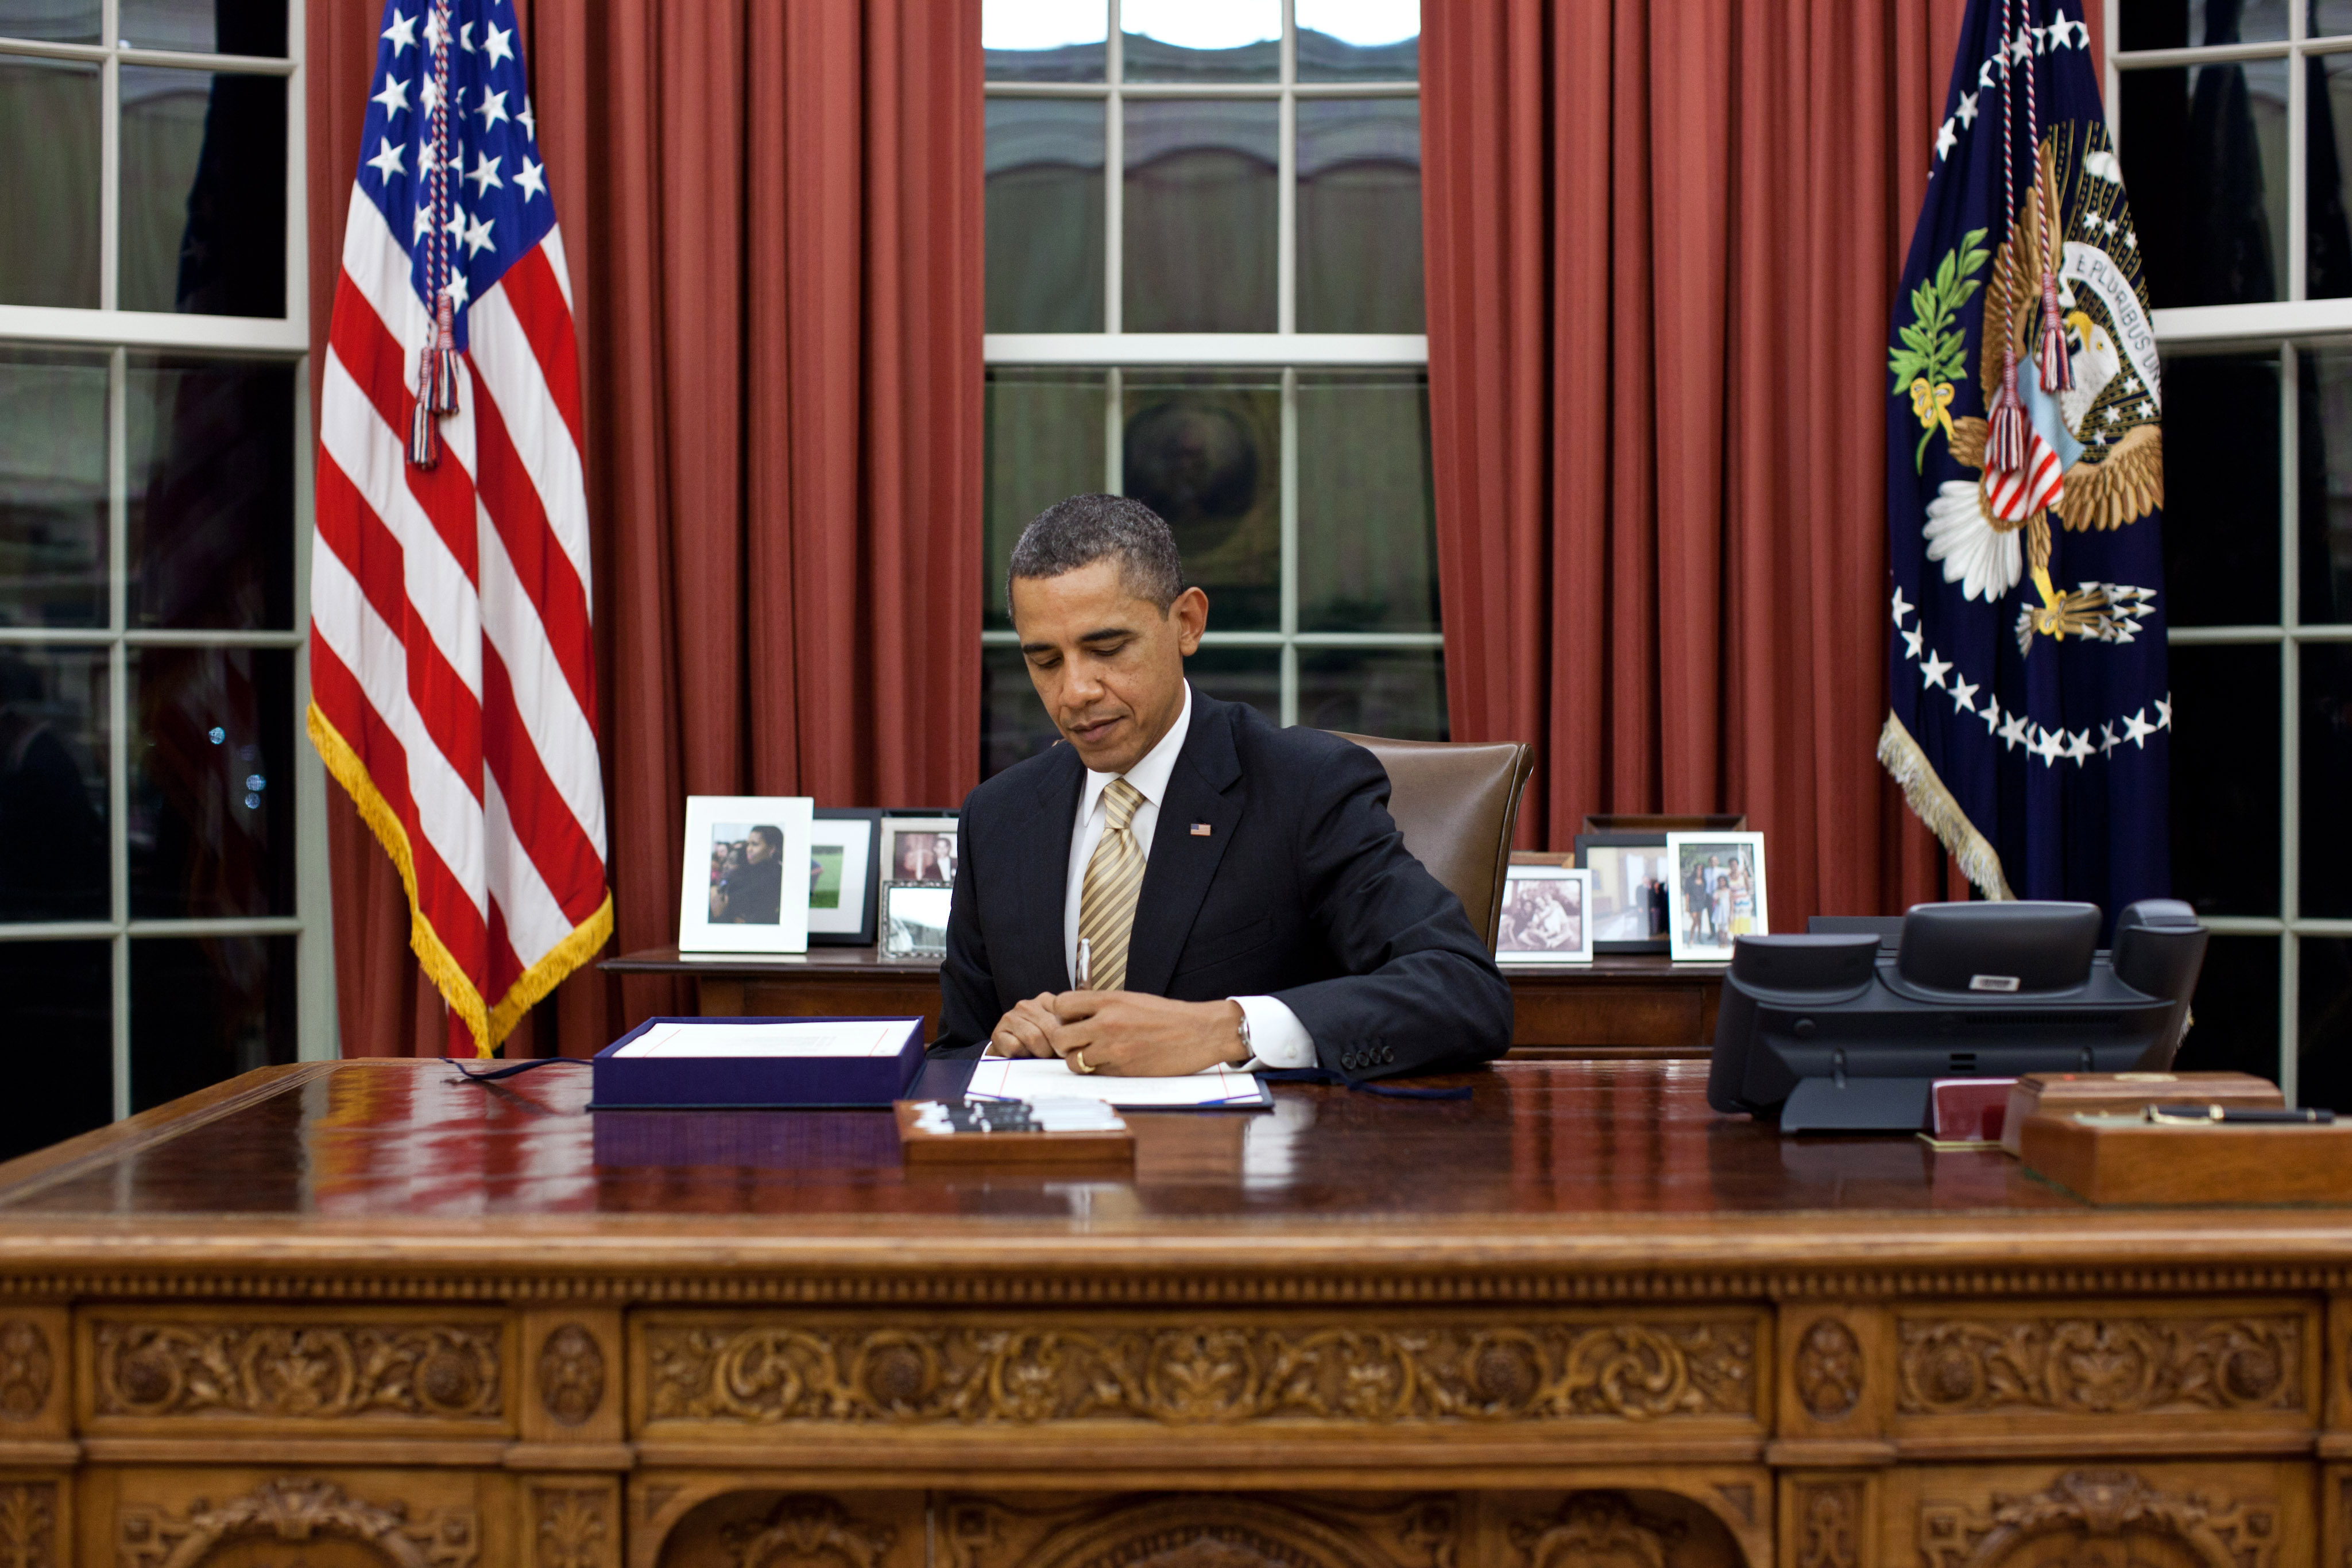 Oval Office Gold Curtains File Barack Obama Signs Hr 3630 Jpg Wikimedia Commons